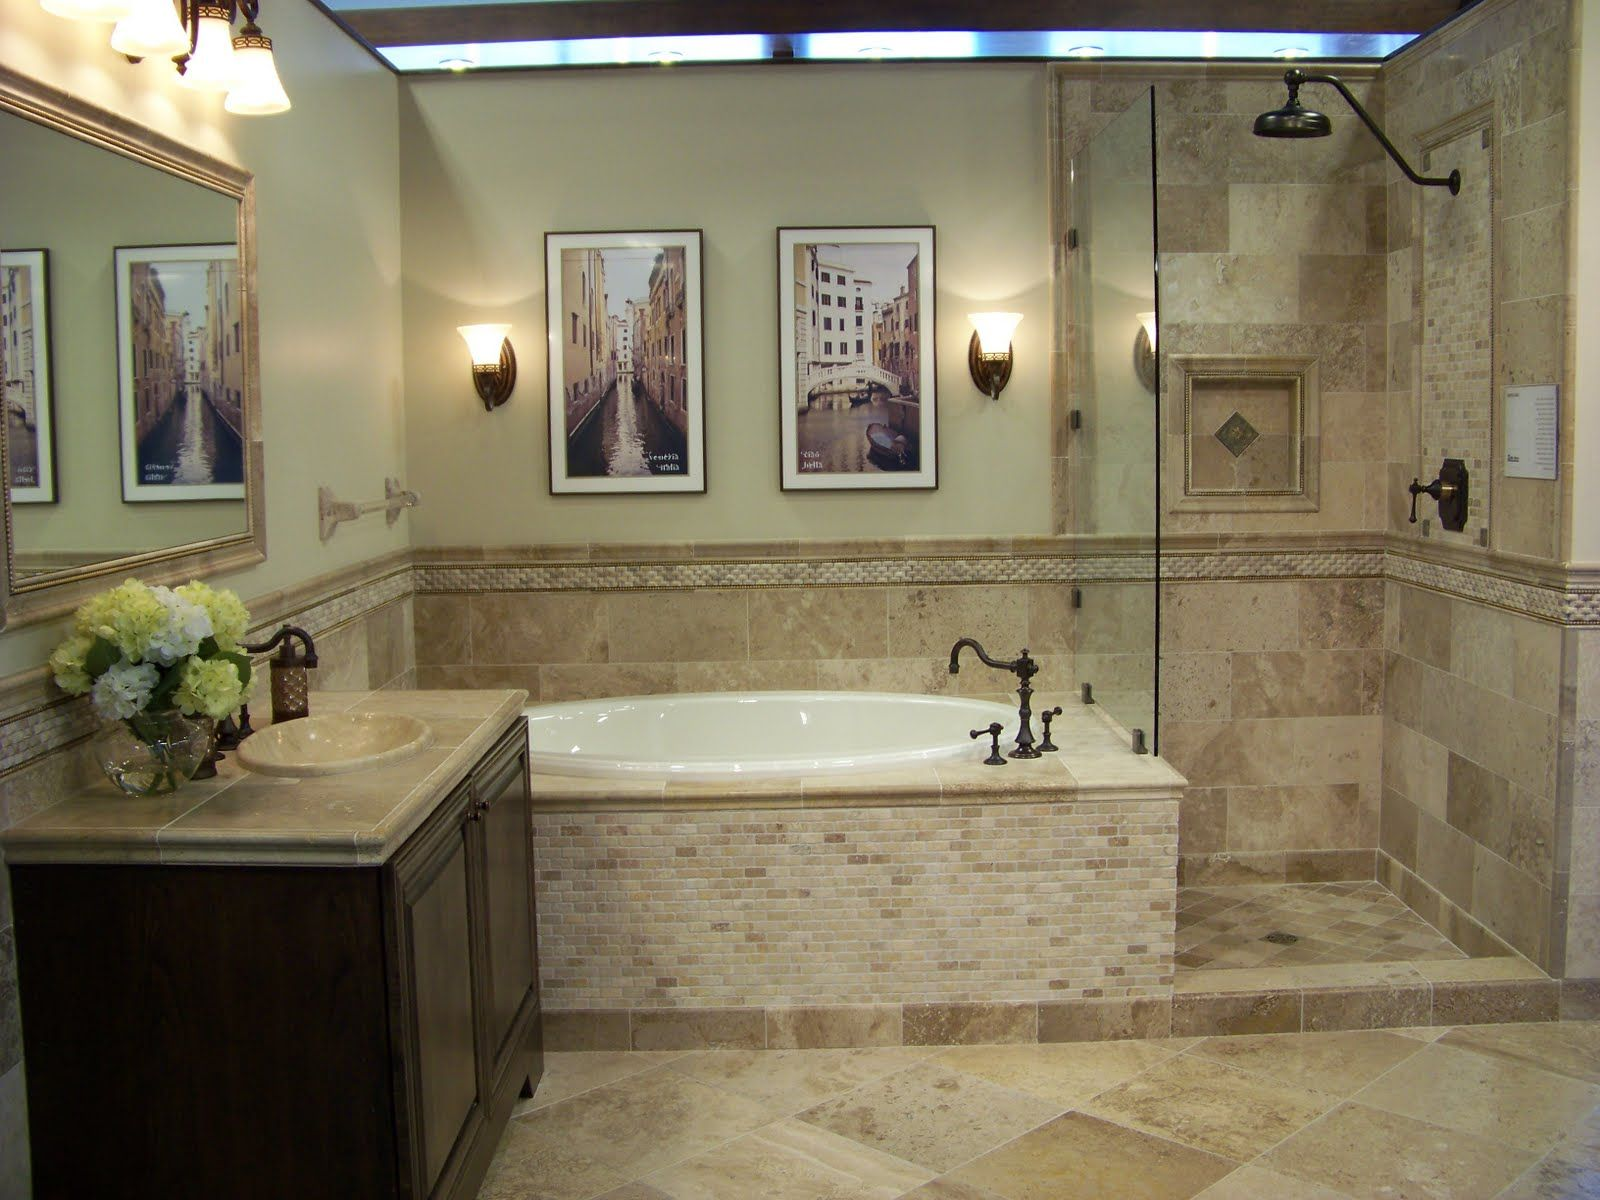 Travertine bathroom floor tile designs mixture of for Travertine tile designs